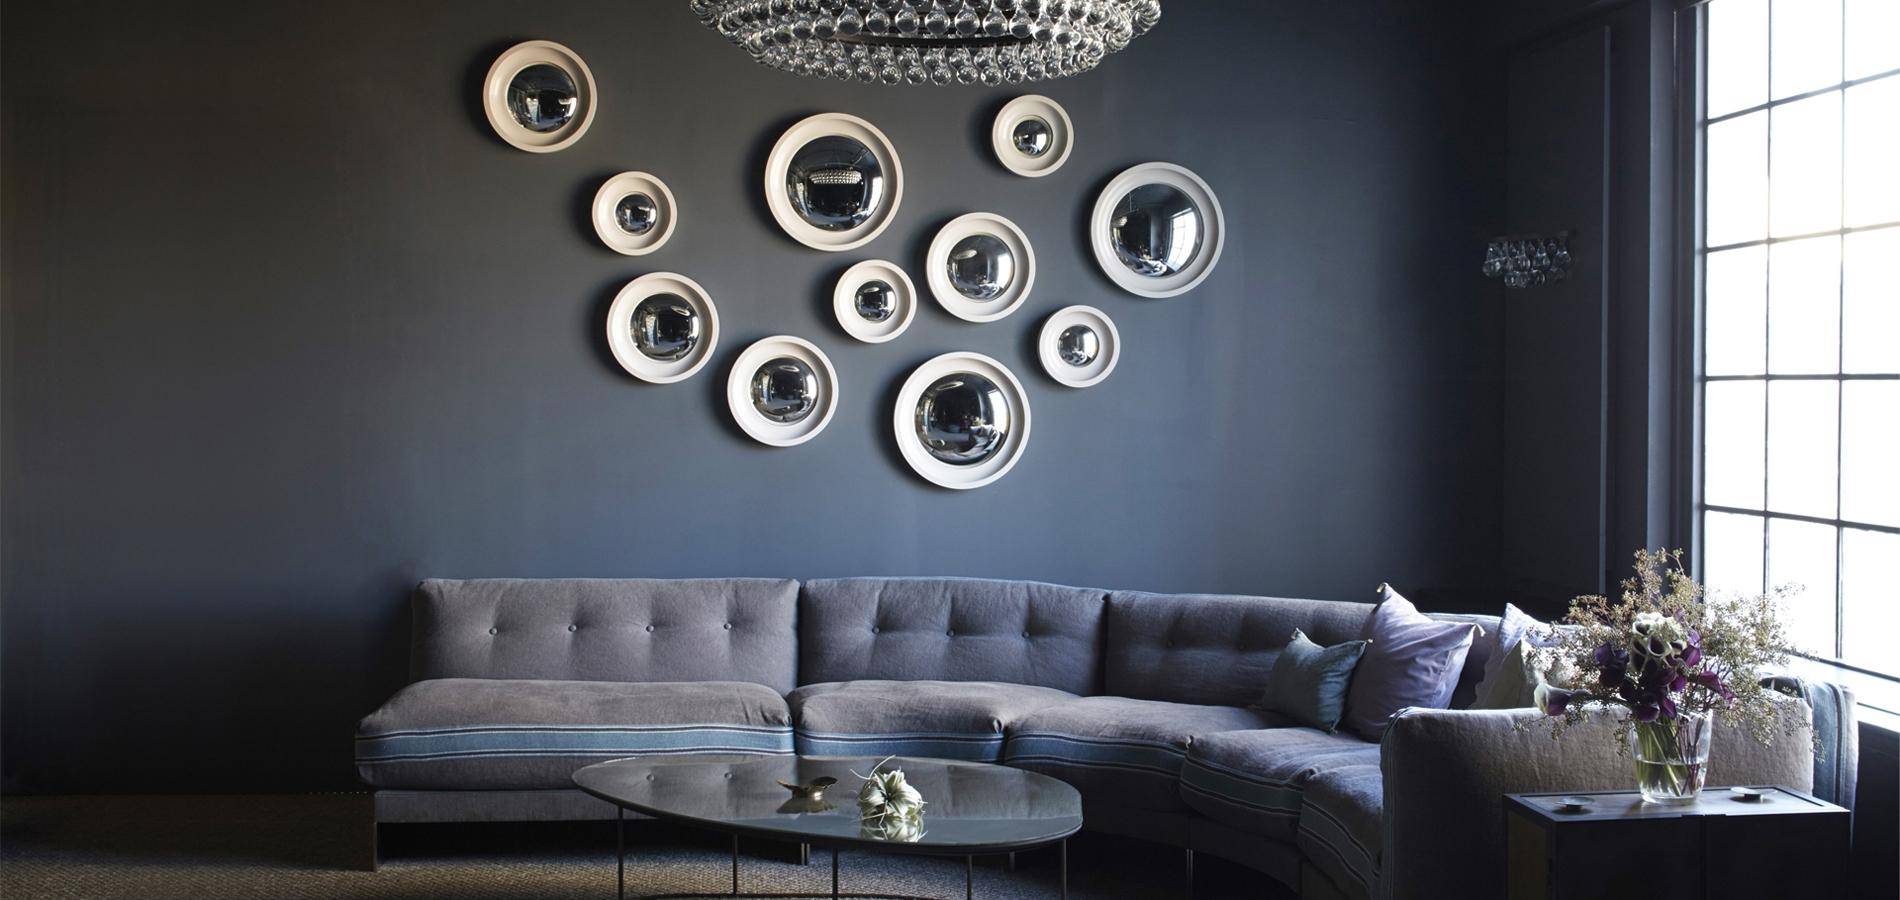 Comment bien utiliser le miroir en d co madame figaro for Decoration miroir mur